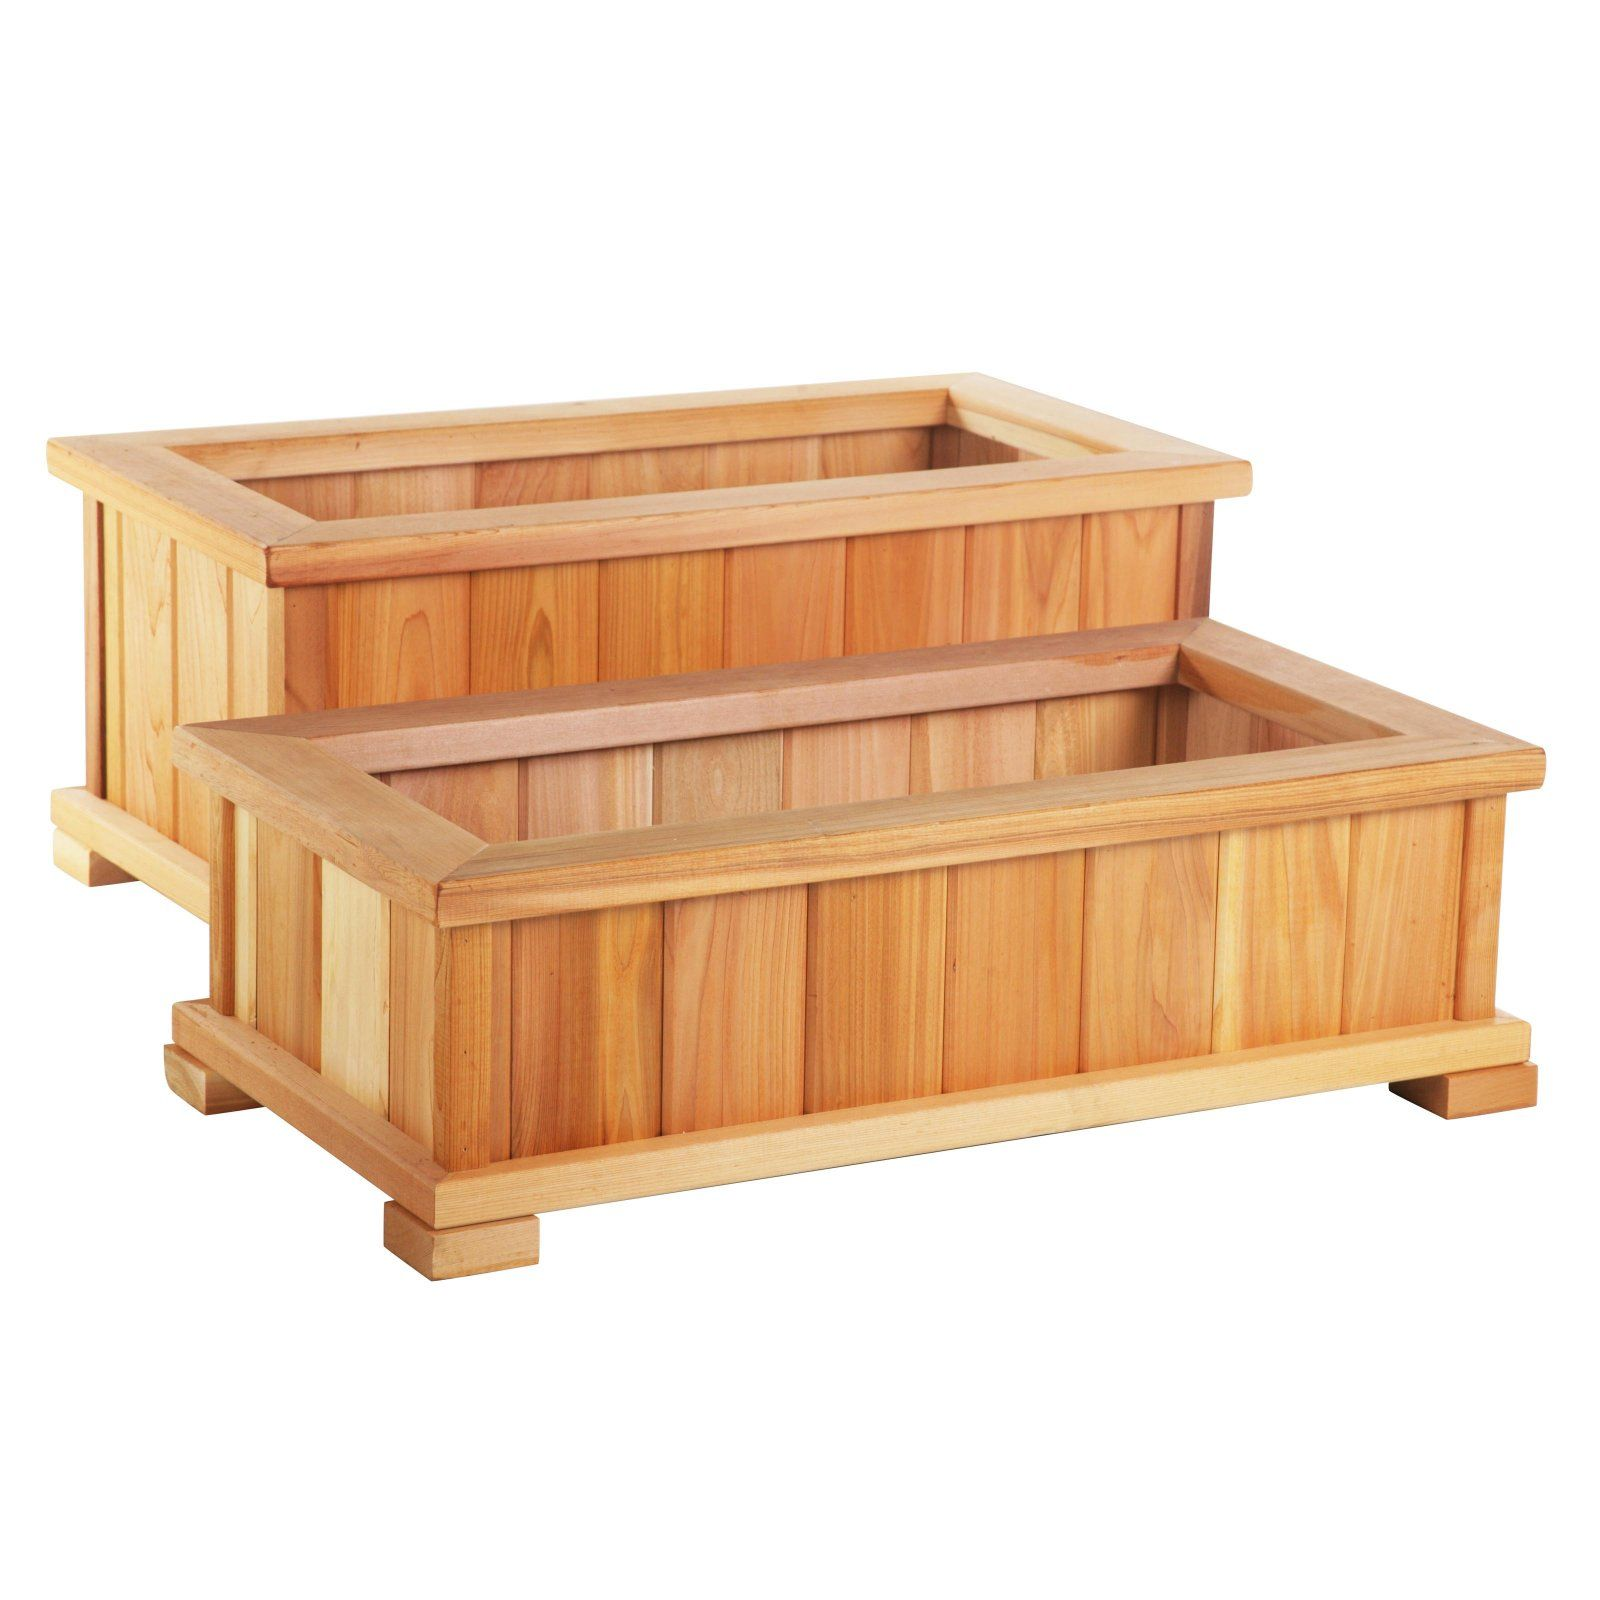 boxes pin plantersplanter pinterest planter achica wooden the garden trading for plantersoutdoor boxeslarge